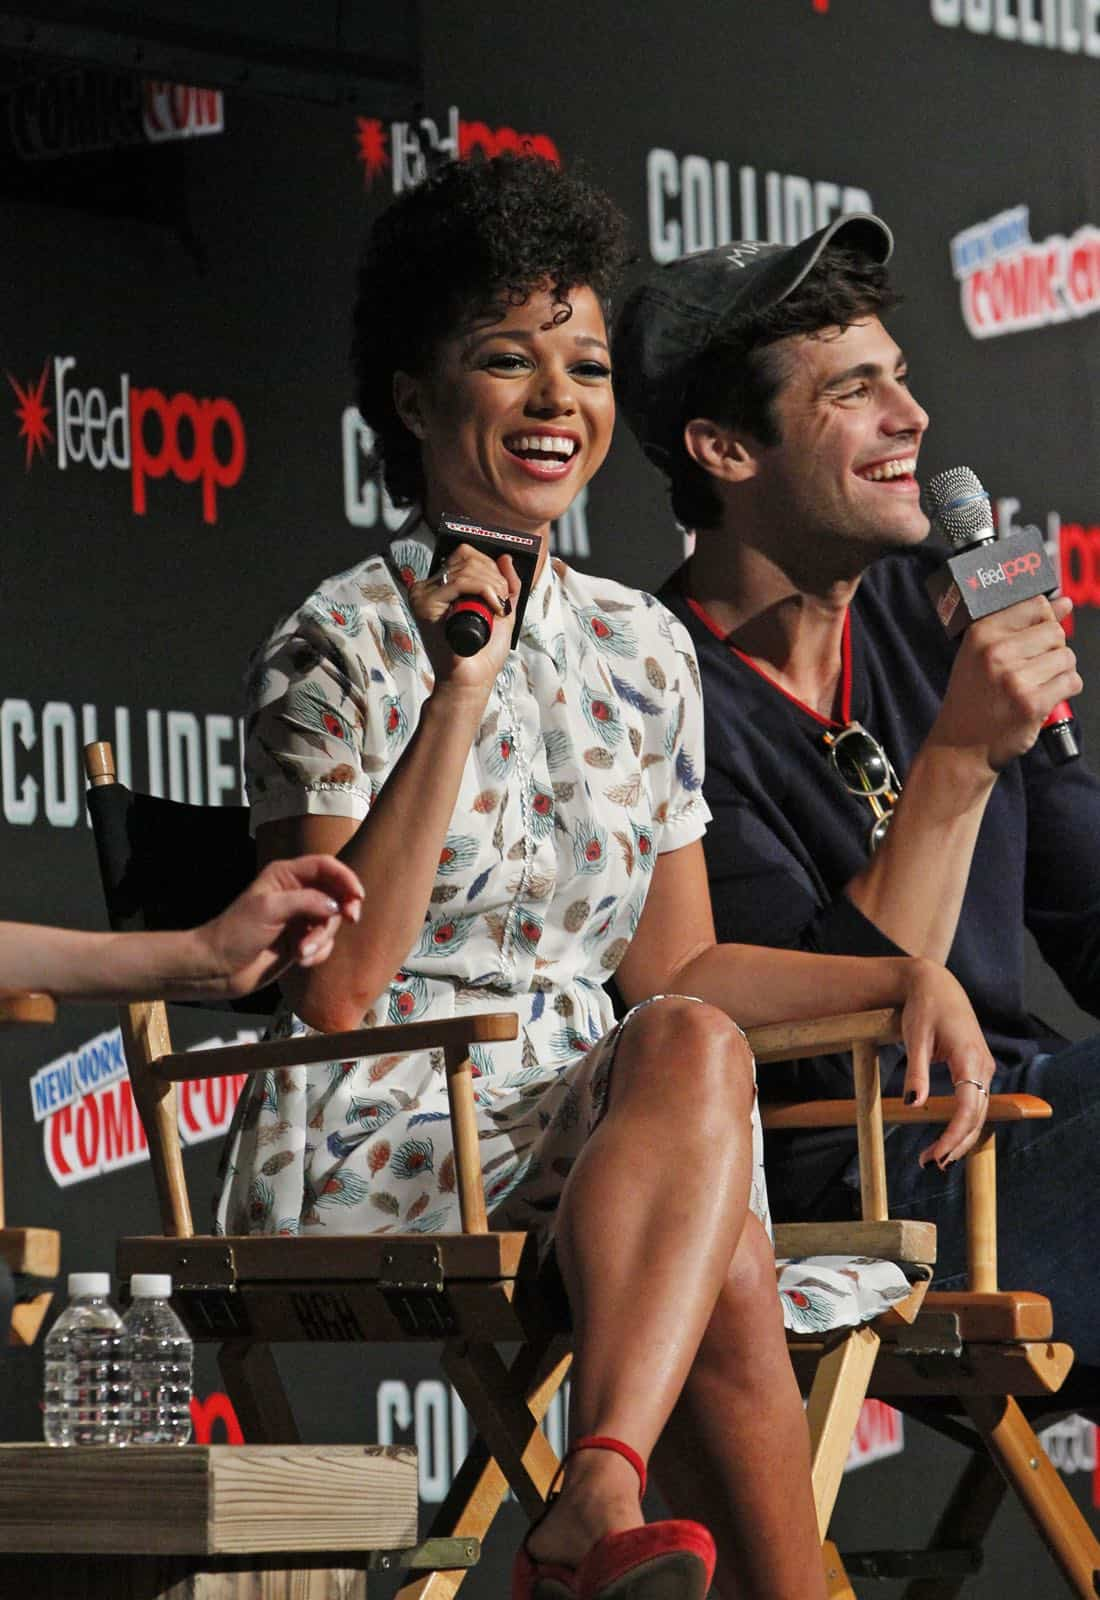 """NY COMIC-CON 2017 -SHADOWHUNTERS - Freeform's genre programming was out in full force at this year's New York Comic Con on Saturday, October 7th with executive producers and cast from the hit series """"Shadowhunters,"""" """"Beyond,"""" and new original series """"Siren."""" (Freeform/Lou Rocco) ALISHA WAINWRIGHT, MATTHEW DADDARIO"""